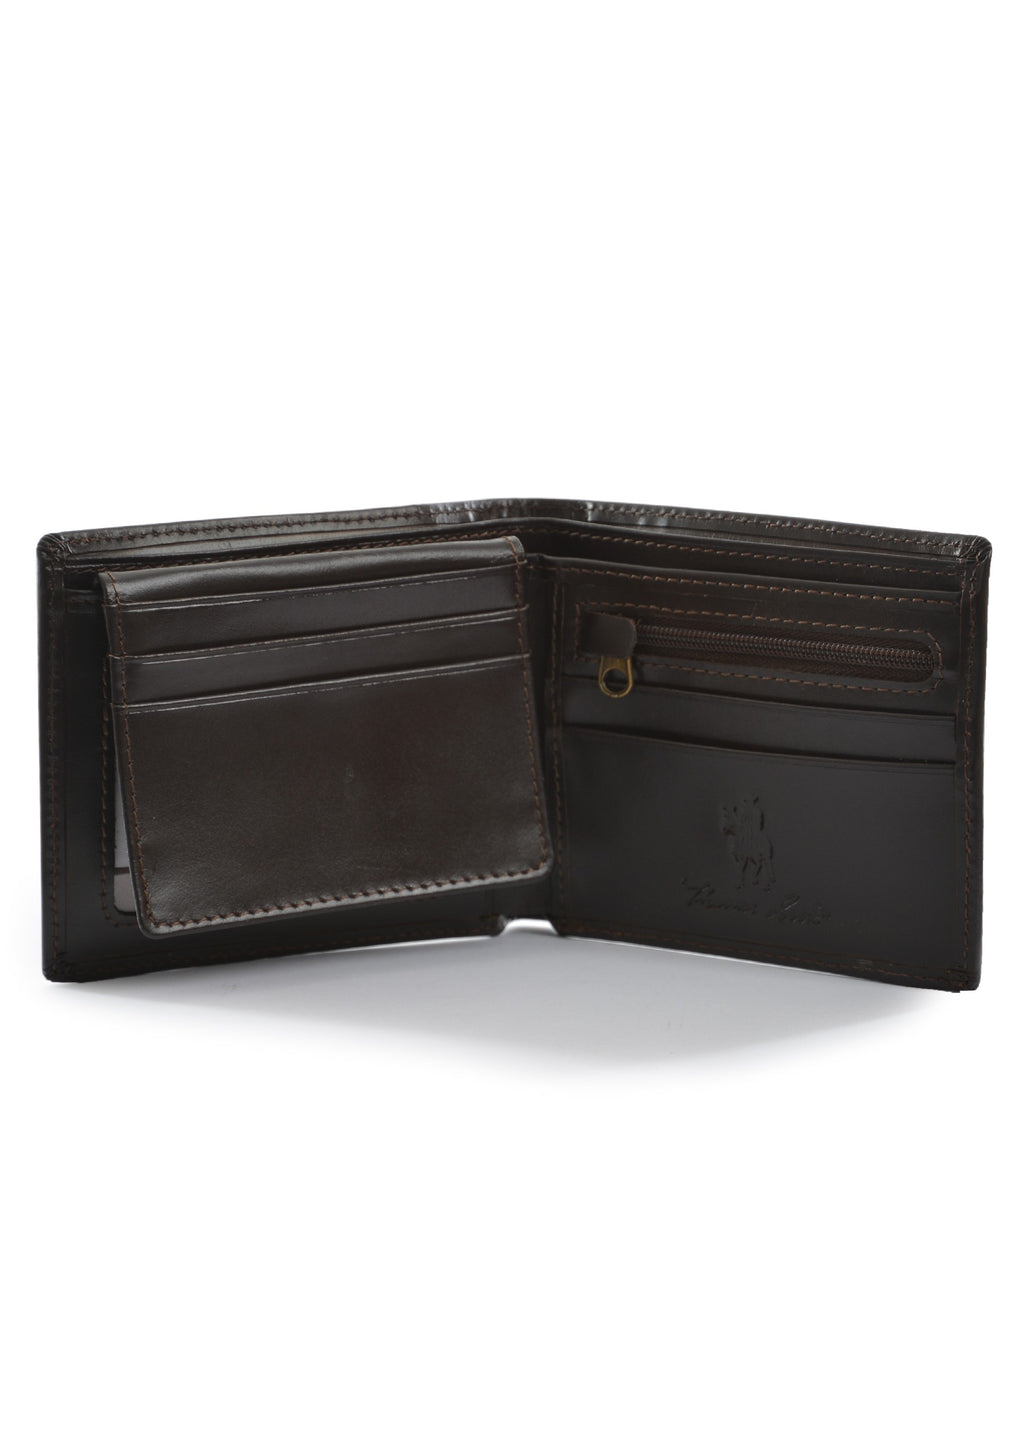 Thomas Cook | Lifestyle | Wallet | Leather Edged | Dark Brown